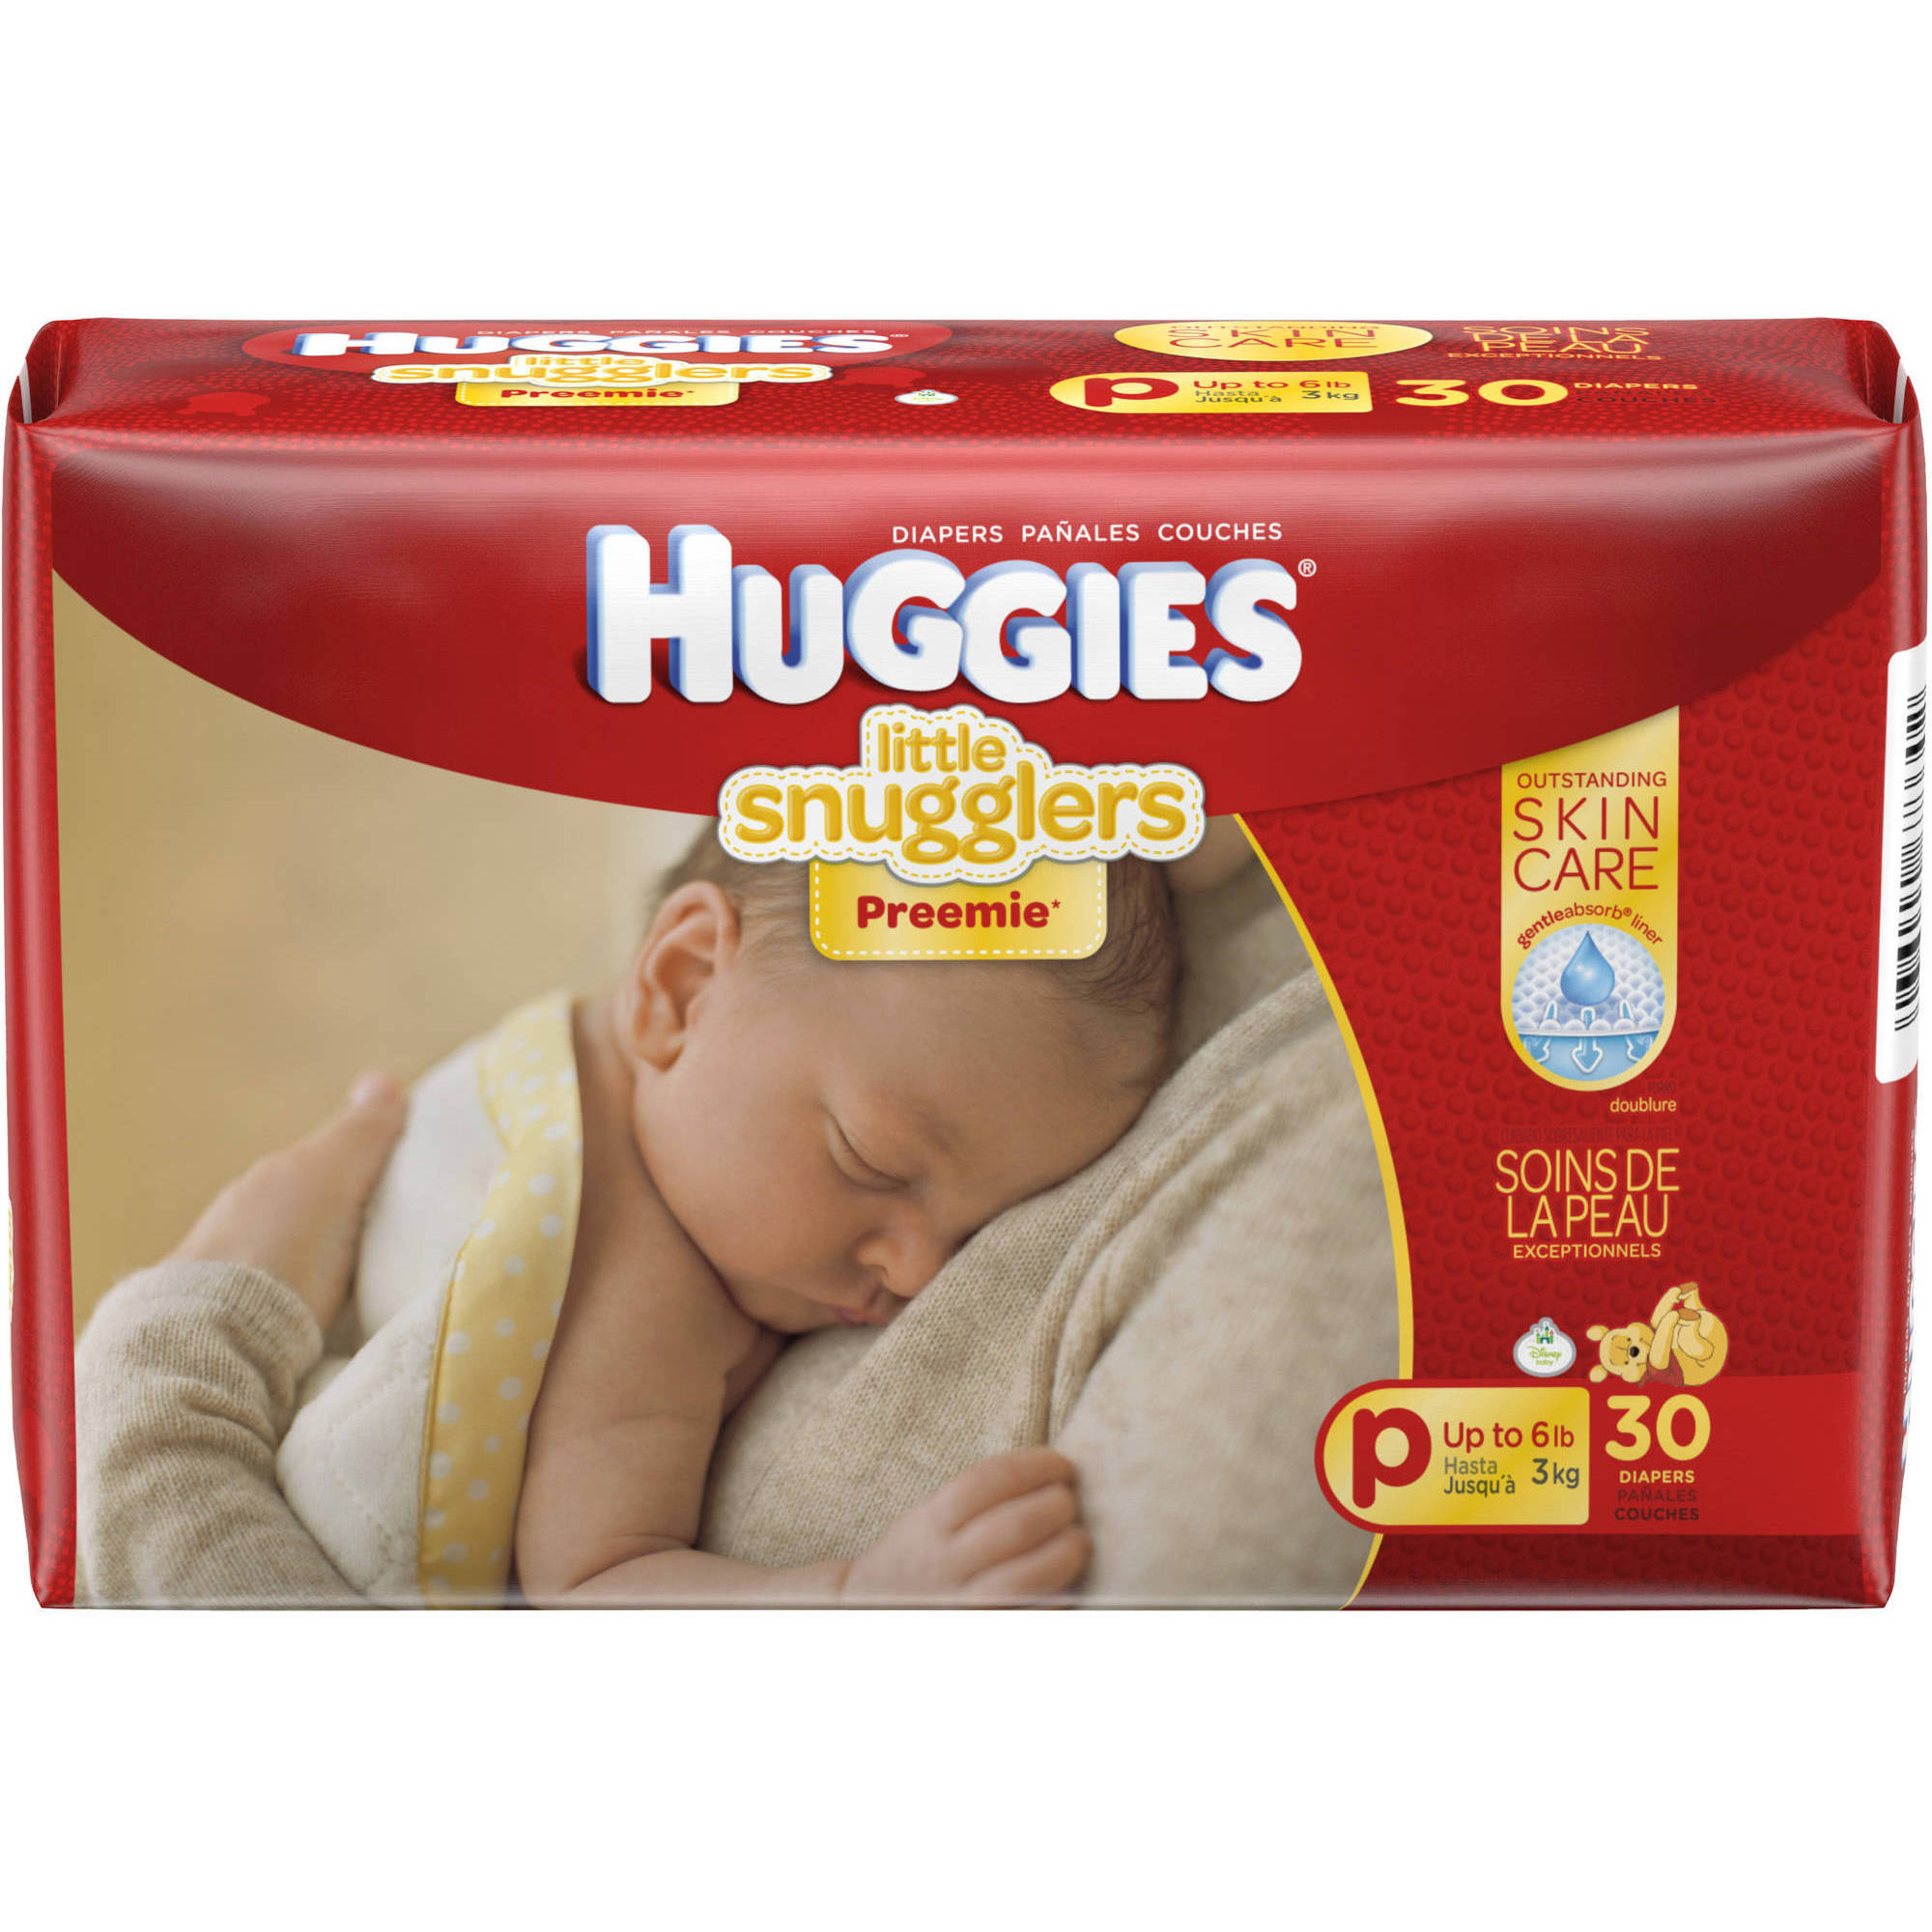 HUGGIES ® brand products are designed to help nurses provide our best care for babies by supporting healthy growth and development, keeping skin dry and working efficiently within the .